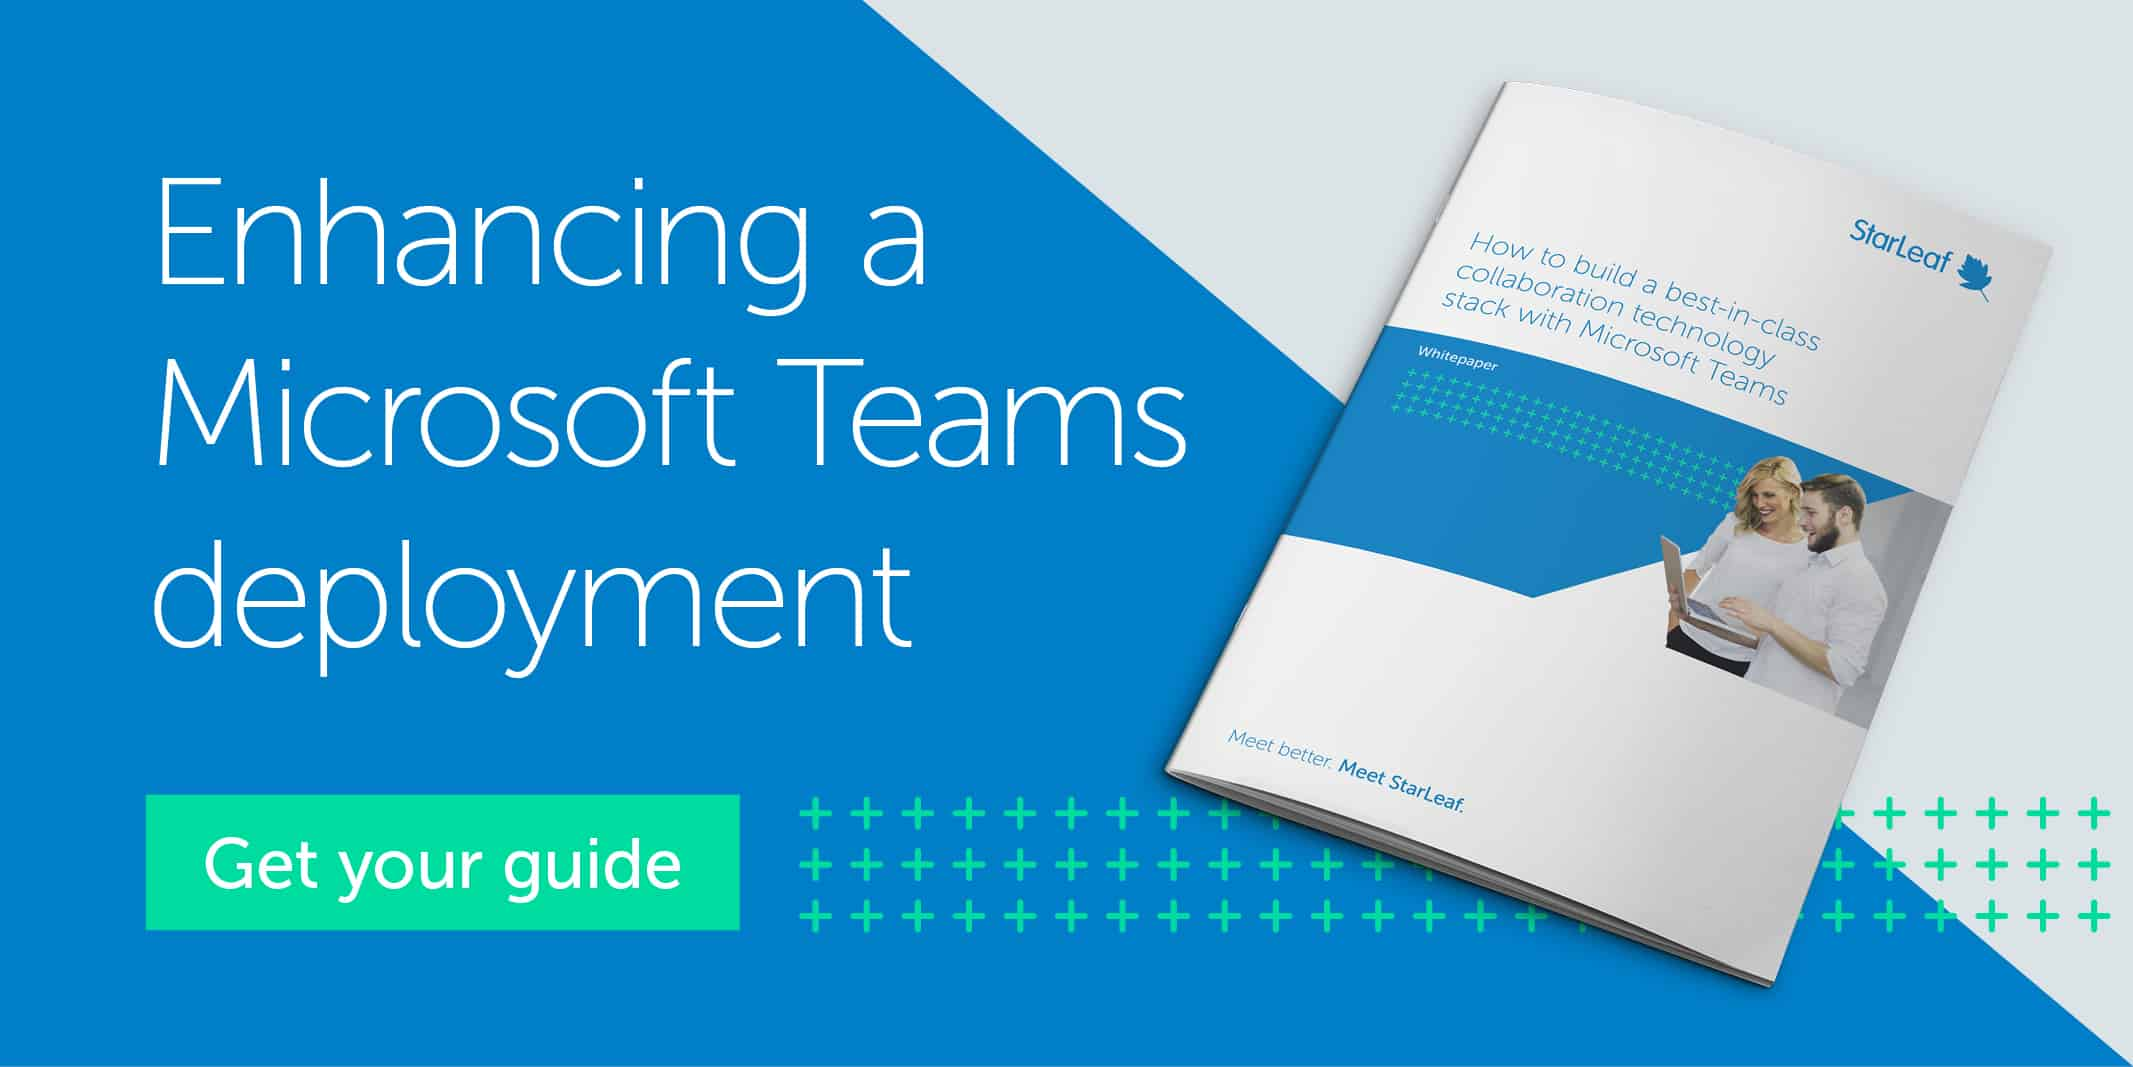 Get your guide to Videoconferencing with Microsoft Teams